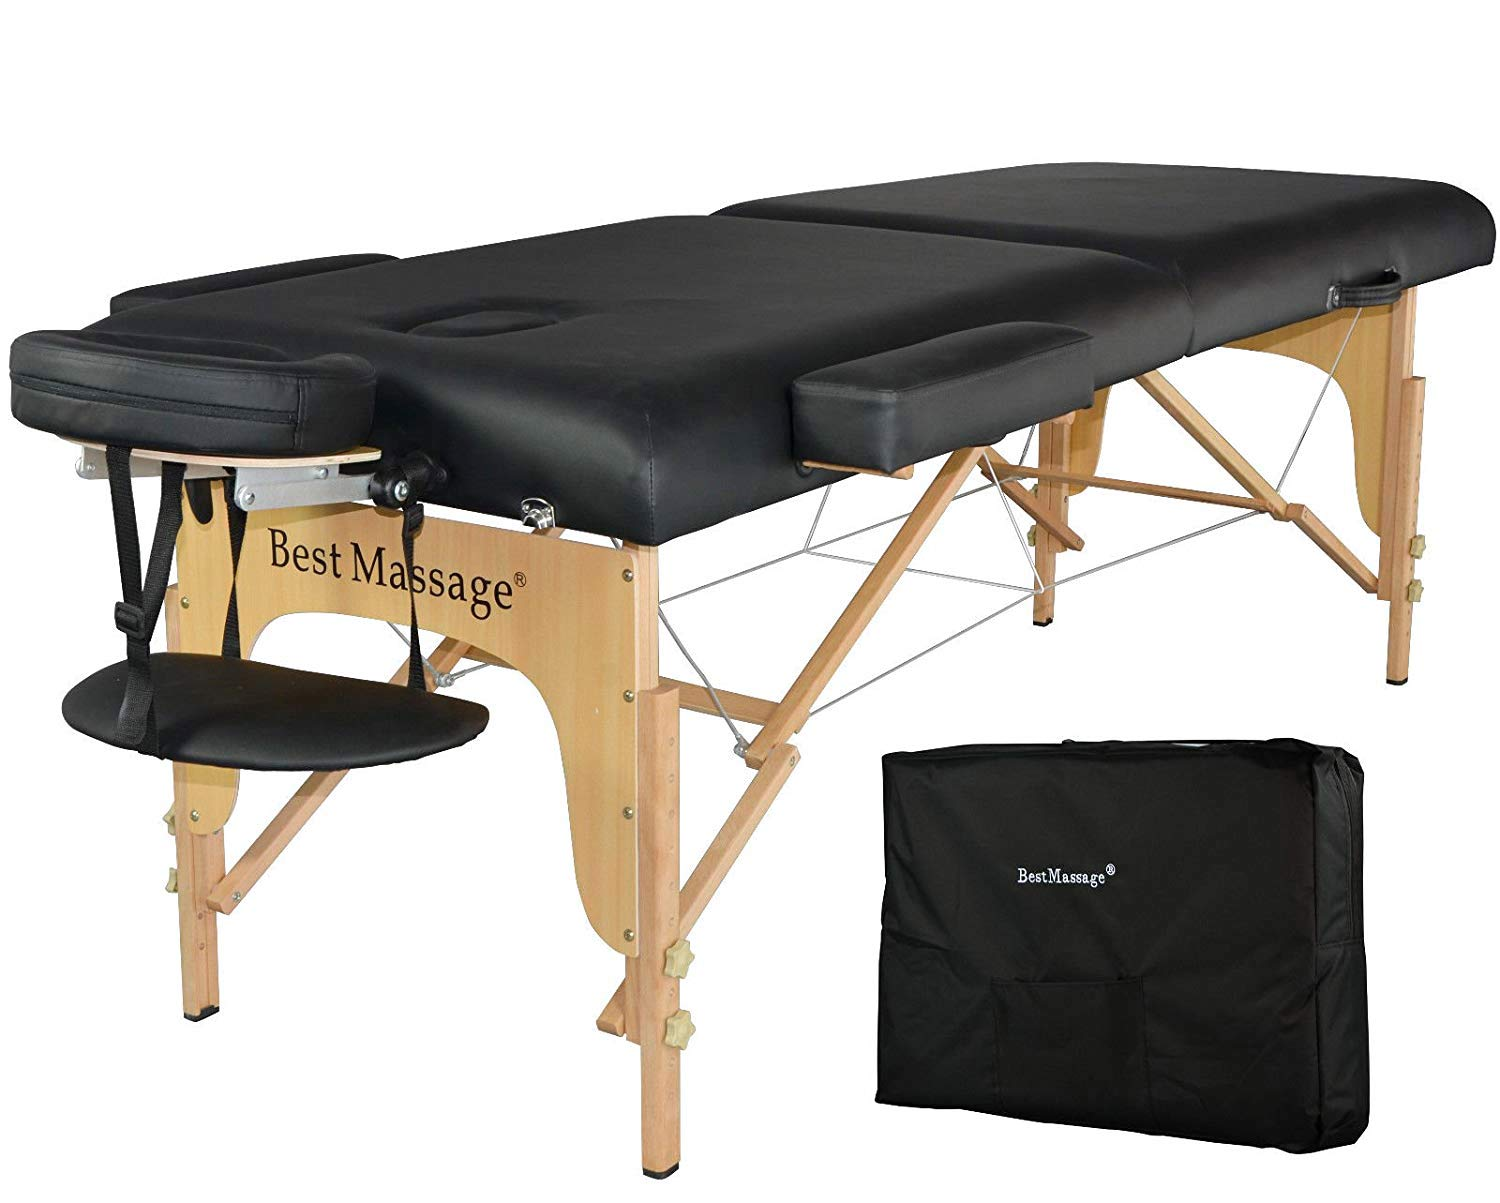 Massage Table Portable Massage Bed Spa Bed 77 Long 28 Wide Heigh Adjustable 2 Fold 3 Thick Density Sponge PU Portable Massage Table Bed w Carry Case Facial Cradle Salon Tattoo Bed